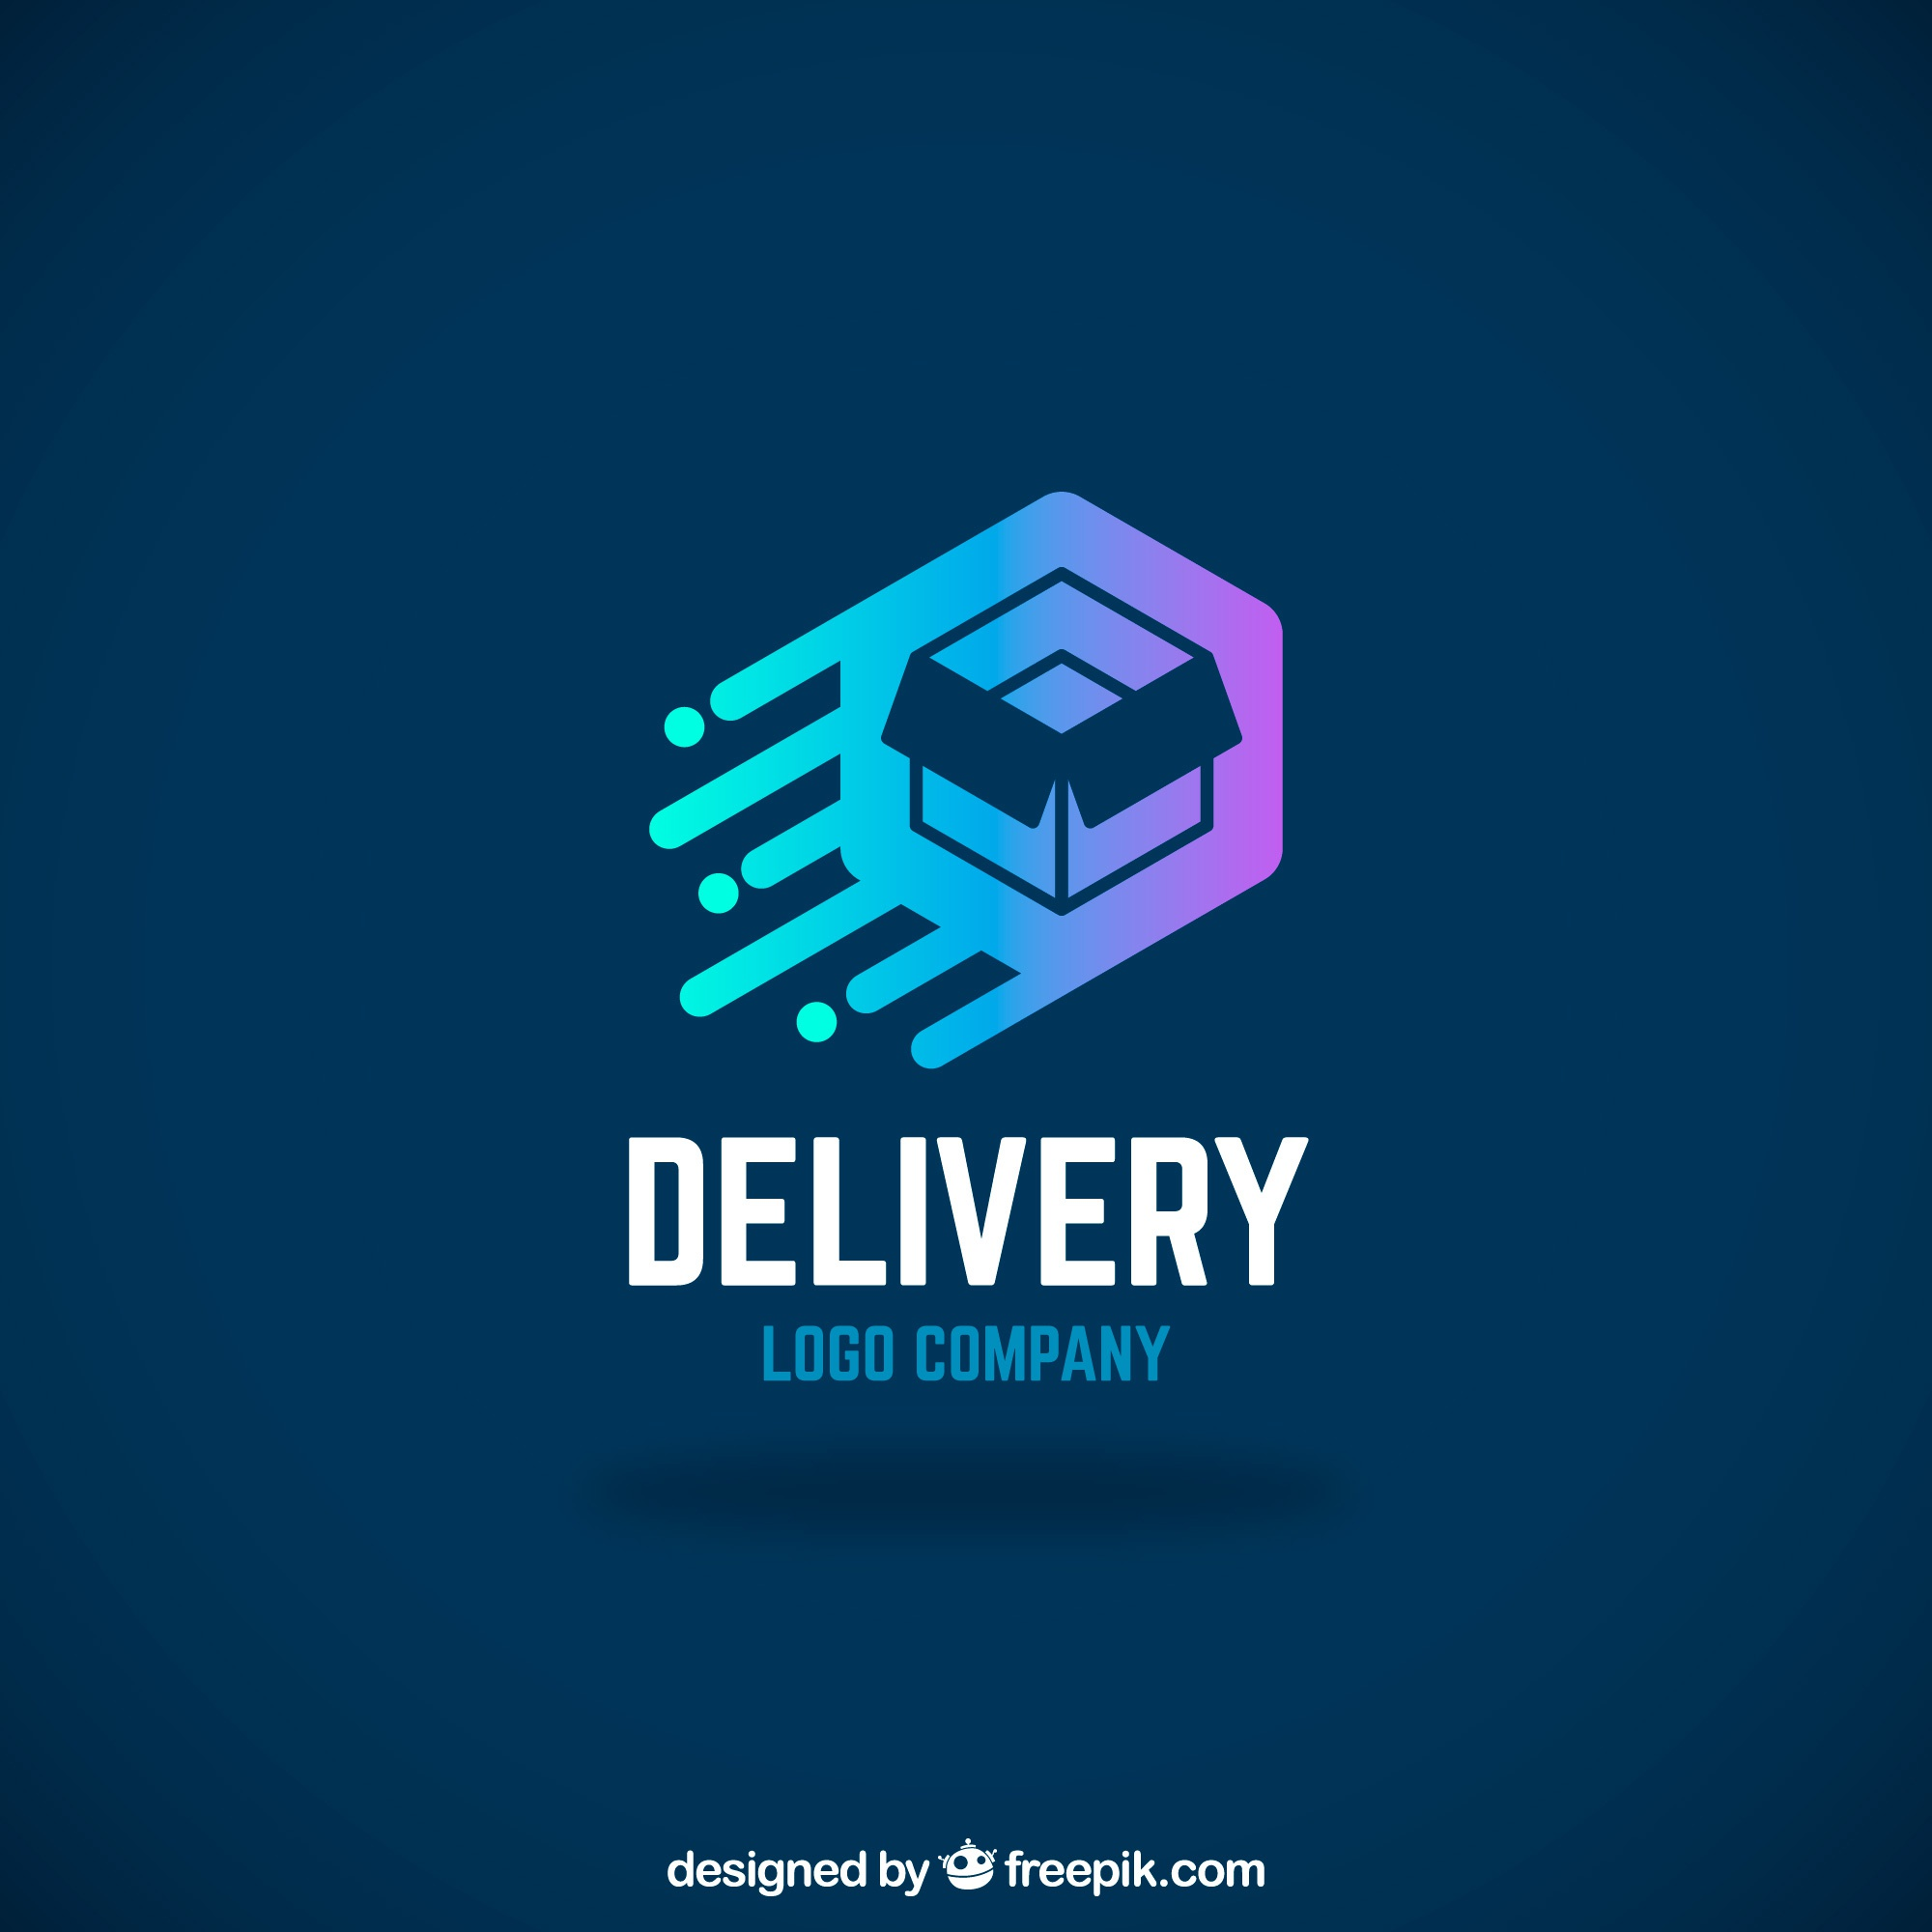 Delivery logo template with gradient effect